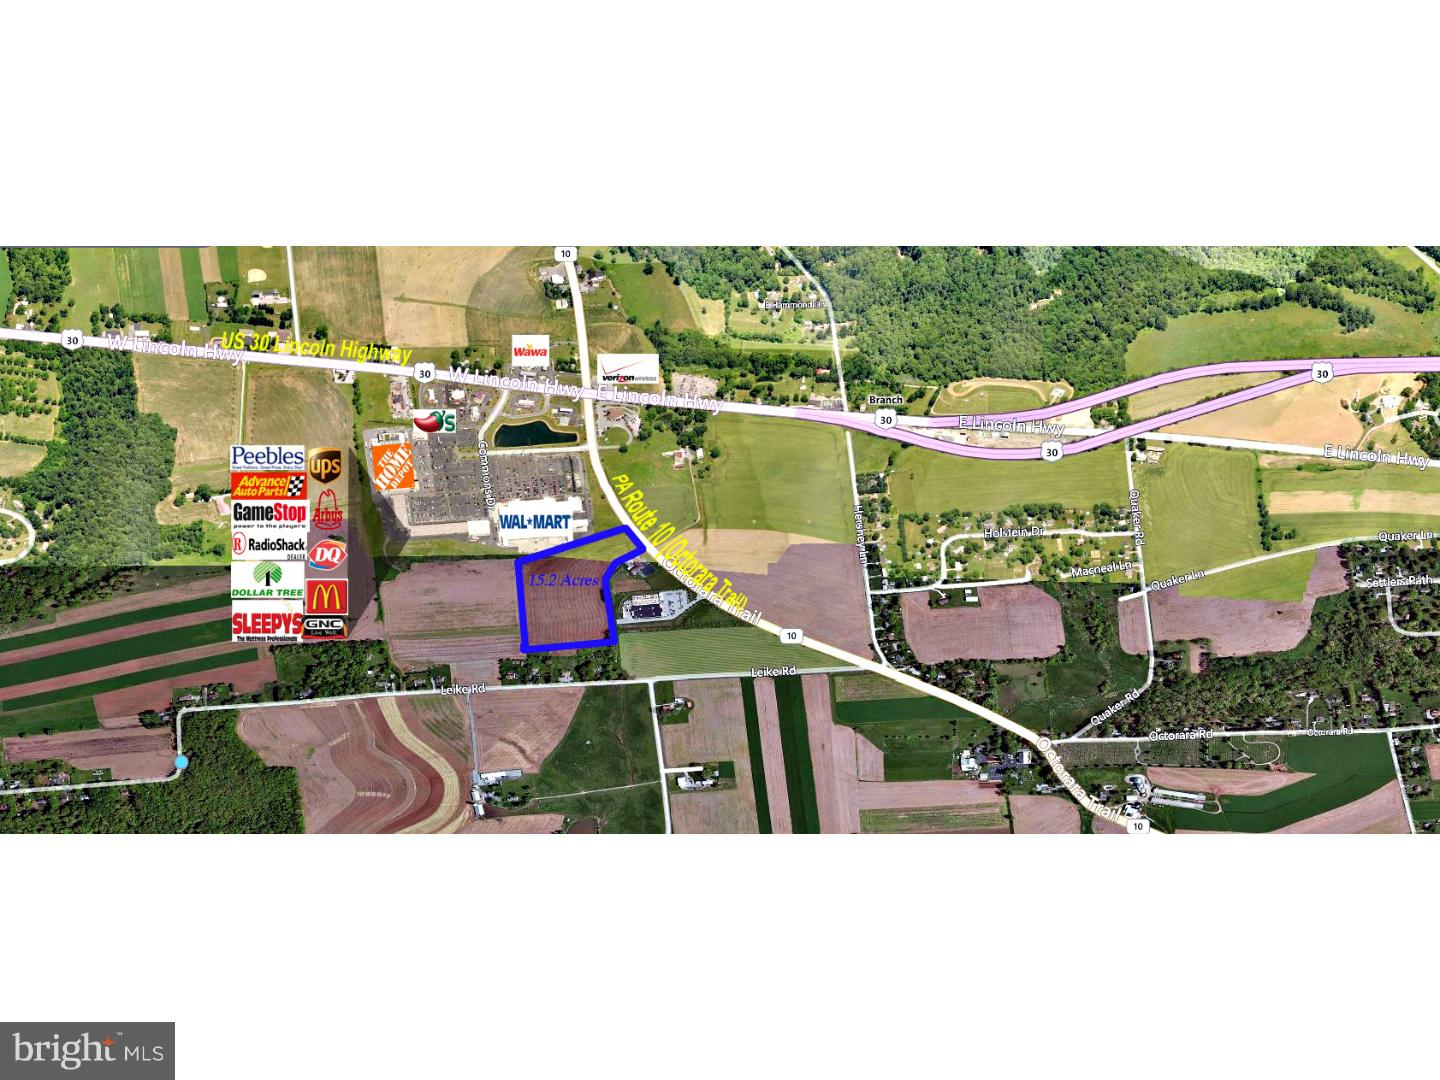 15.52 Acres Commercially-Zoned Land for Sale - Development Opportunity along strong retail corridor of US30/PA10 in Parkesburg, PA. This parcel is located just south of WalMart traffic light intersection and directly across from new in-progress retail development. See W Sadsbury Township Zoning Dept for approved uses. Great visibility, high-traffic counts. Adjoining parcel #3370300010100 is also available for sale (14.69 acres/fronts on PA10 as well).